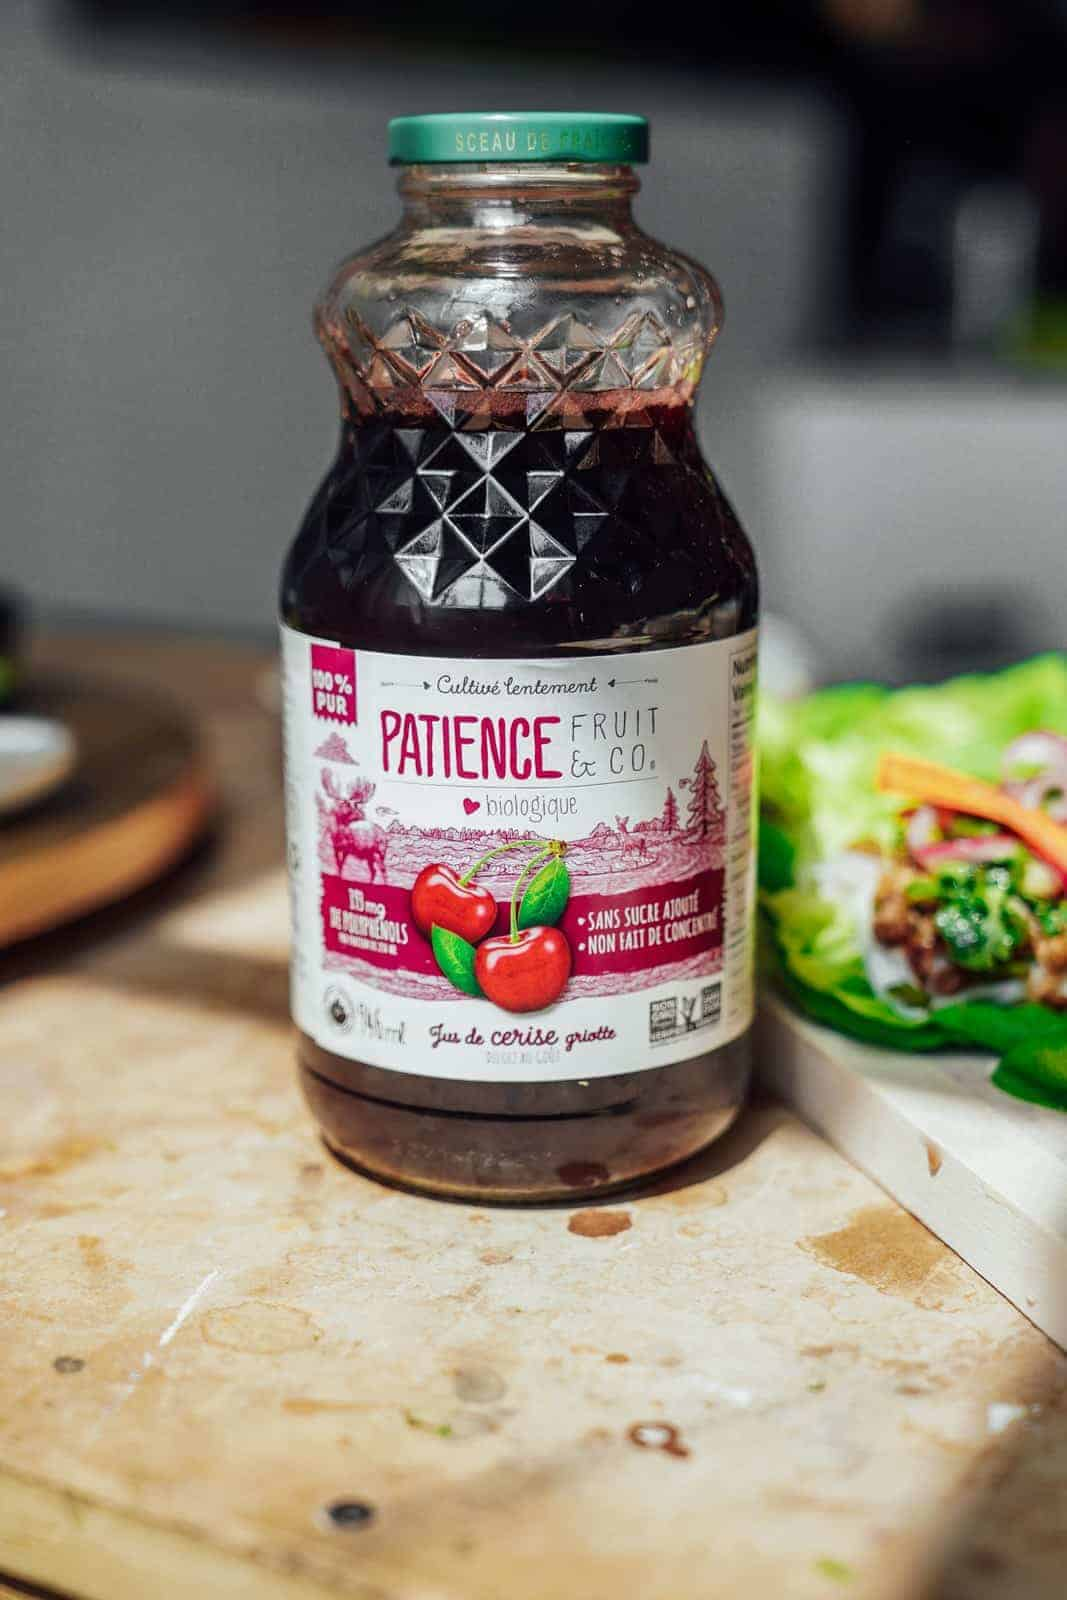 Bottle of Patience Fruit & Co. Cherry Juice sitting on countertop with lettuce wraps in the background.